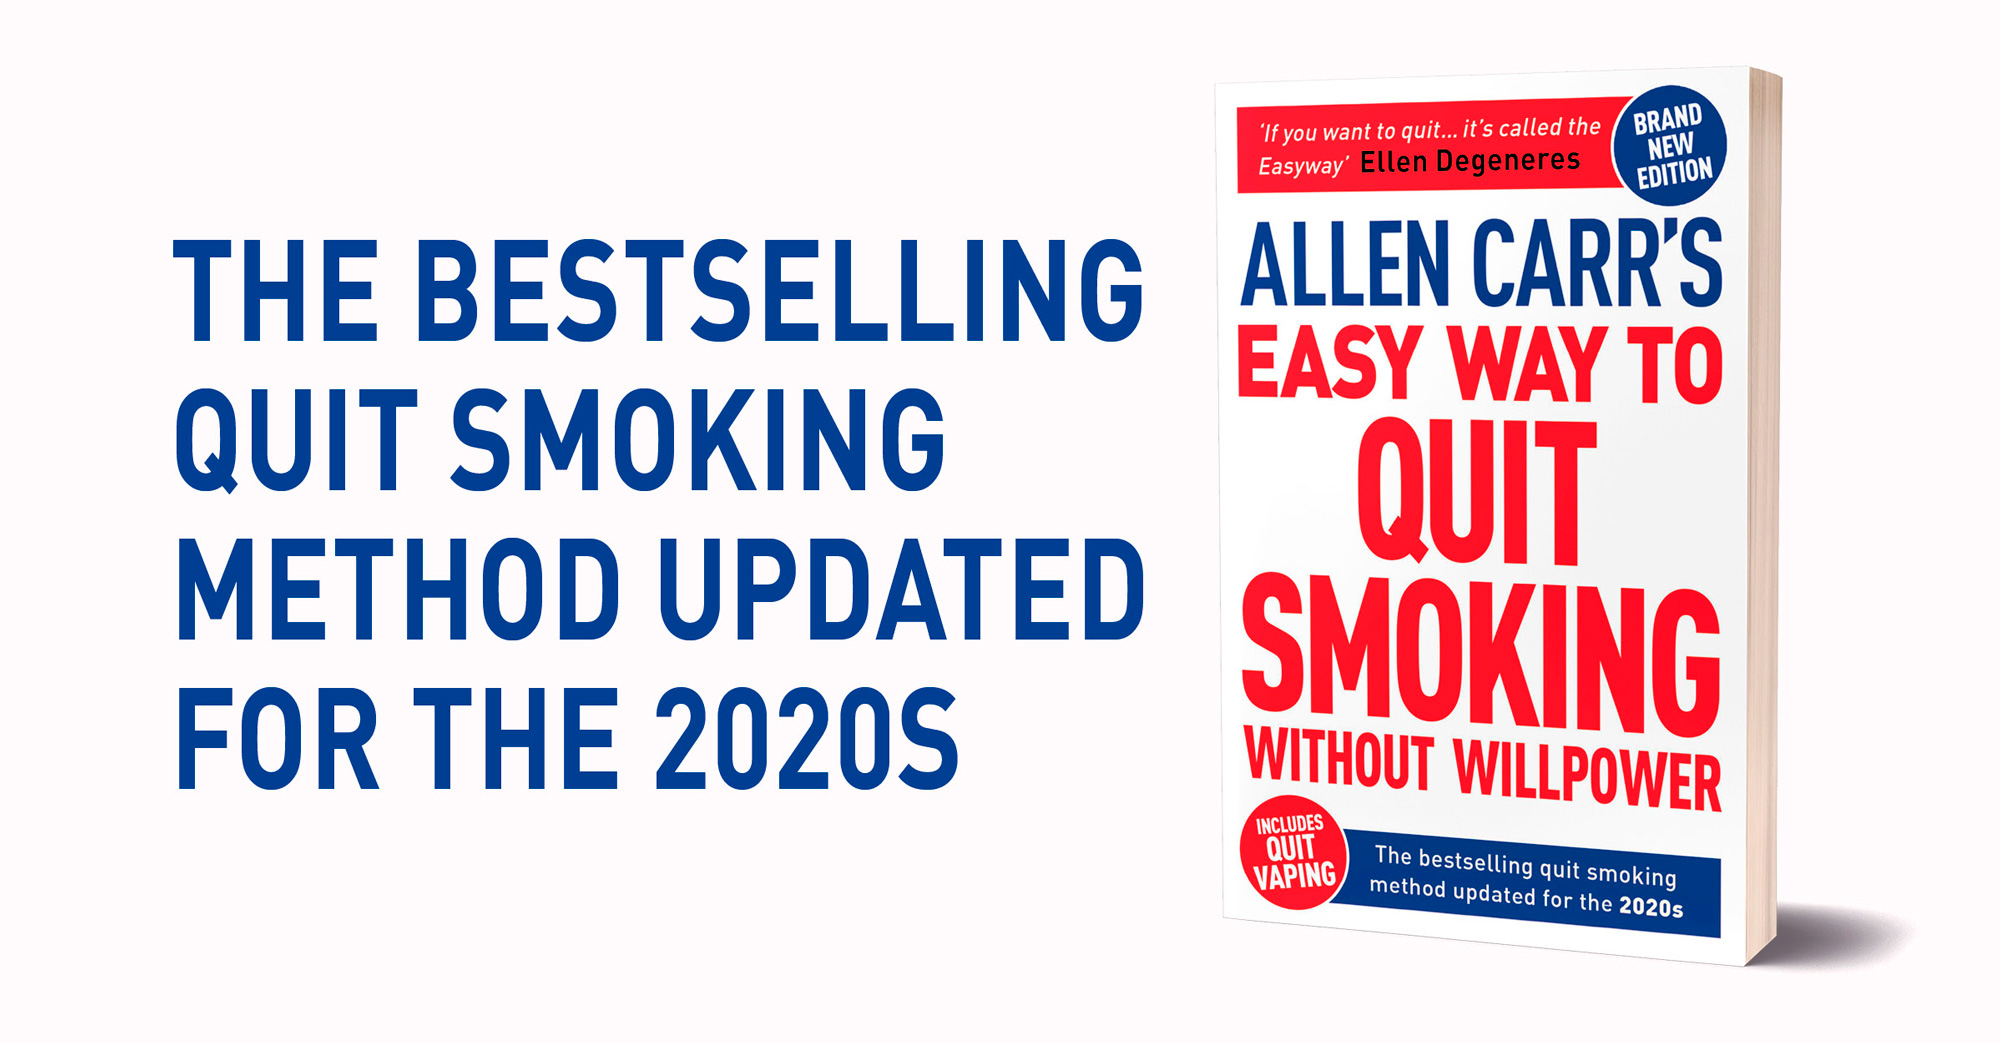 The Bestselling quit smoking method updated for the 2020s